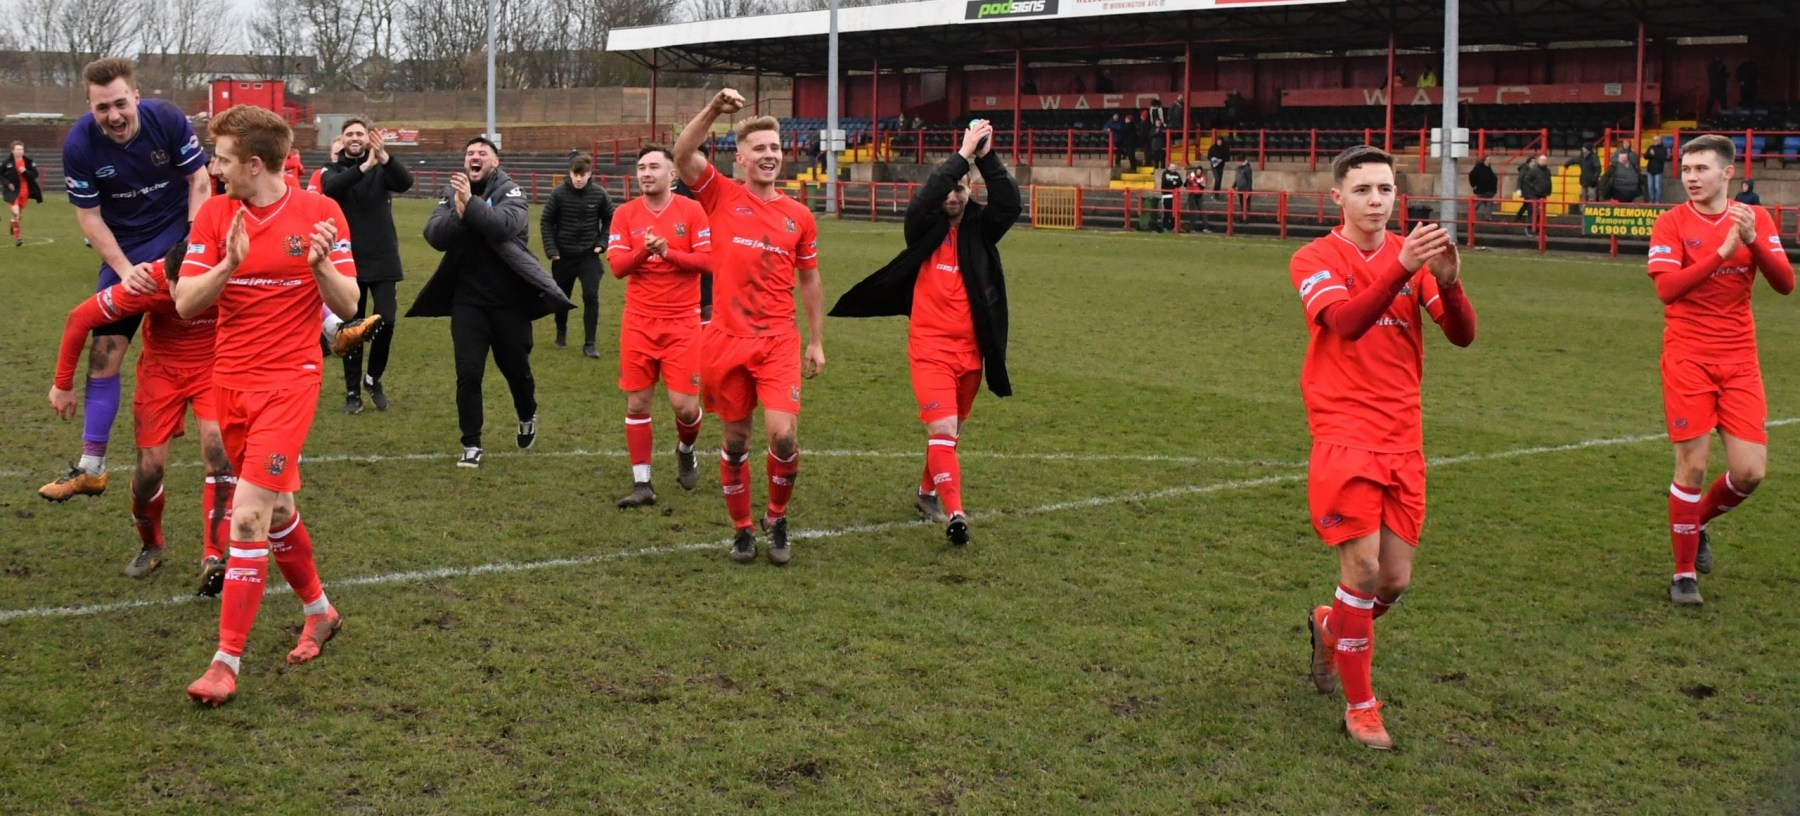 The-Reds-thank-their-supporters-after-the-win-over-Brighouse-Ben-Challis-scaled